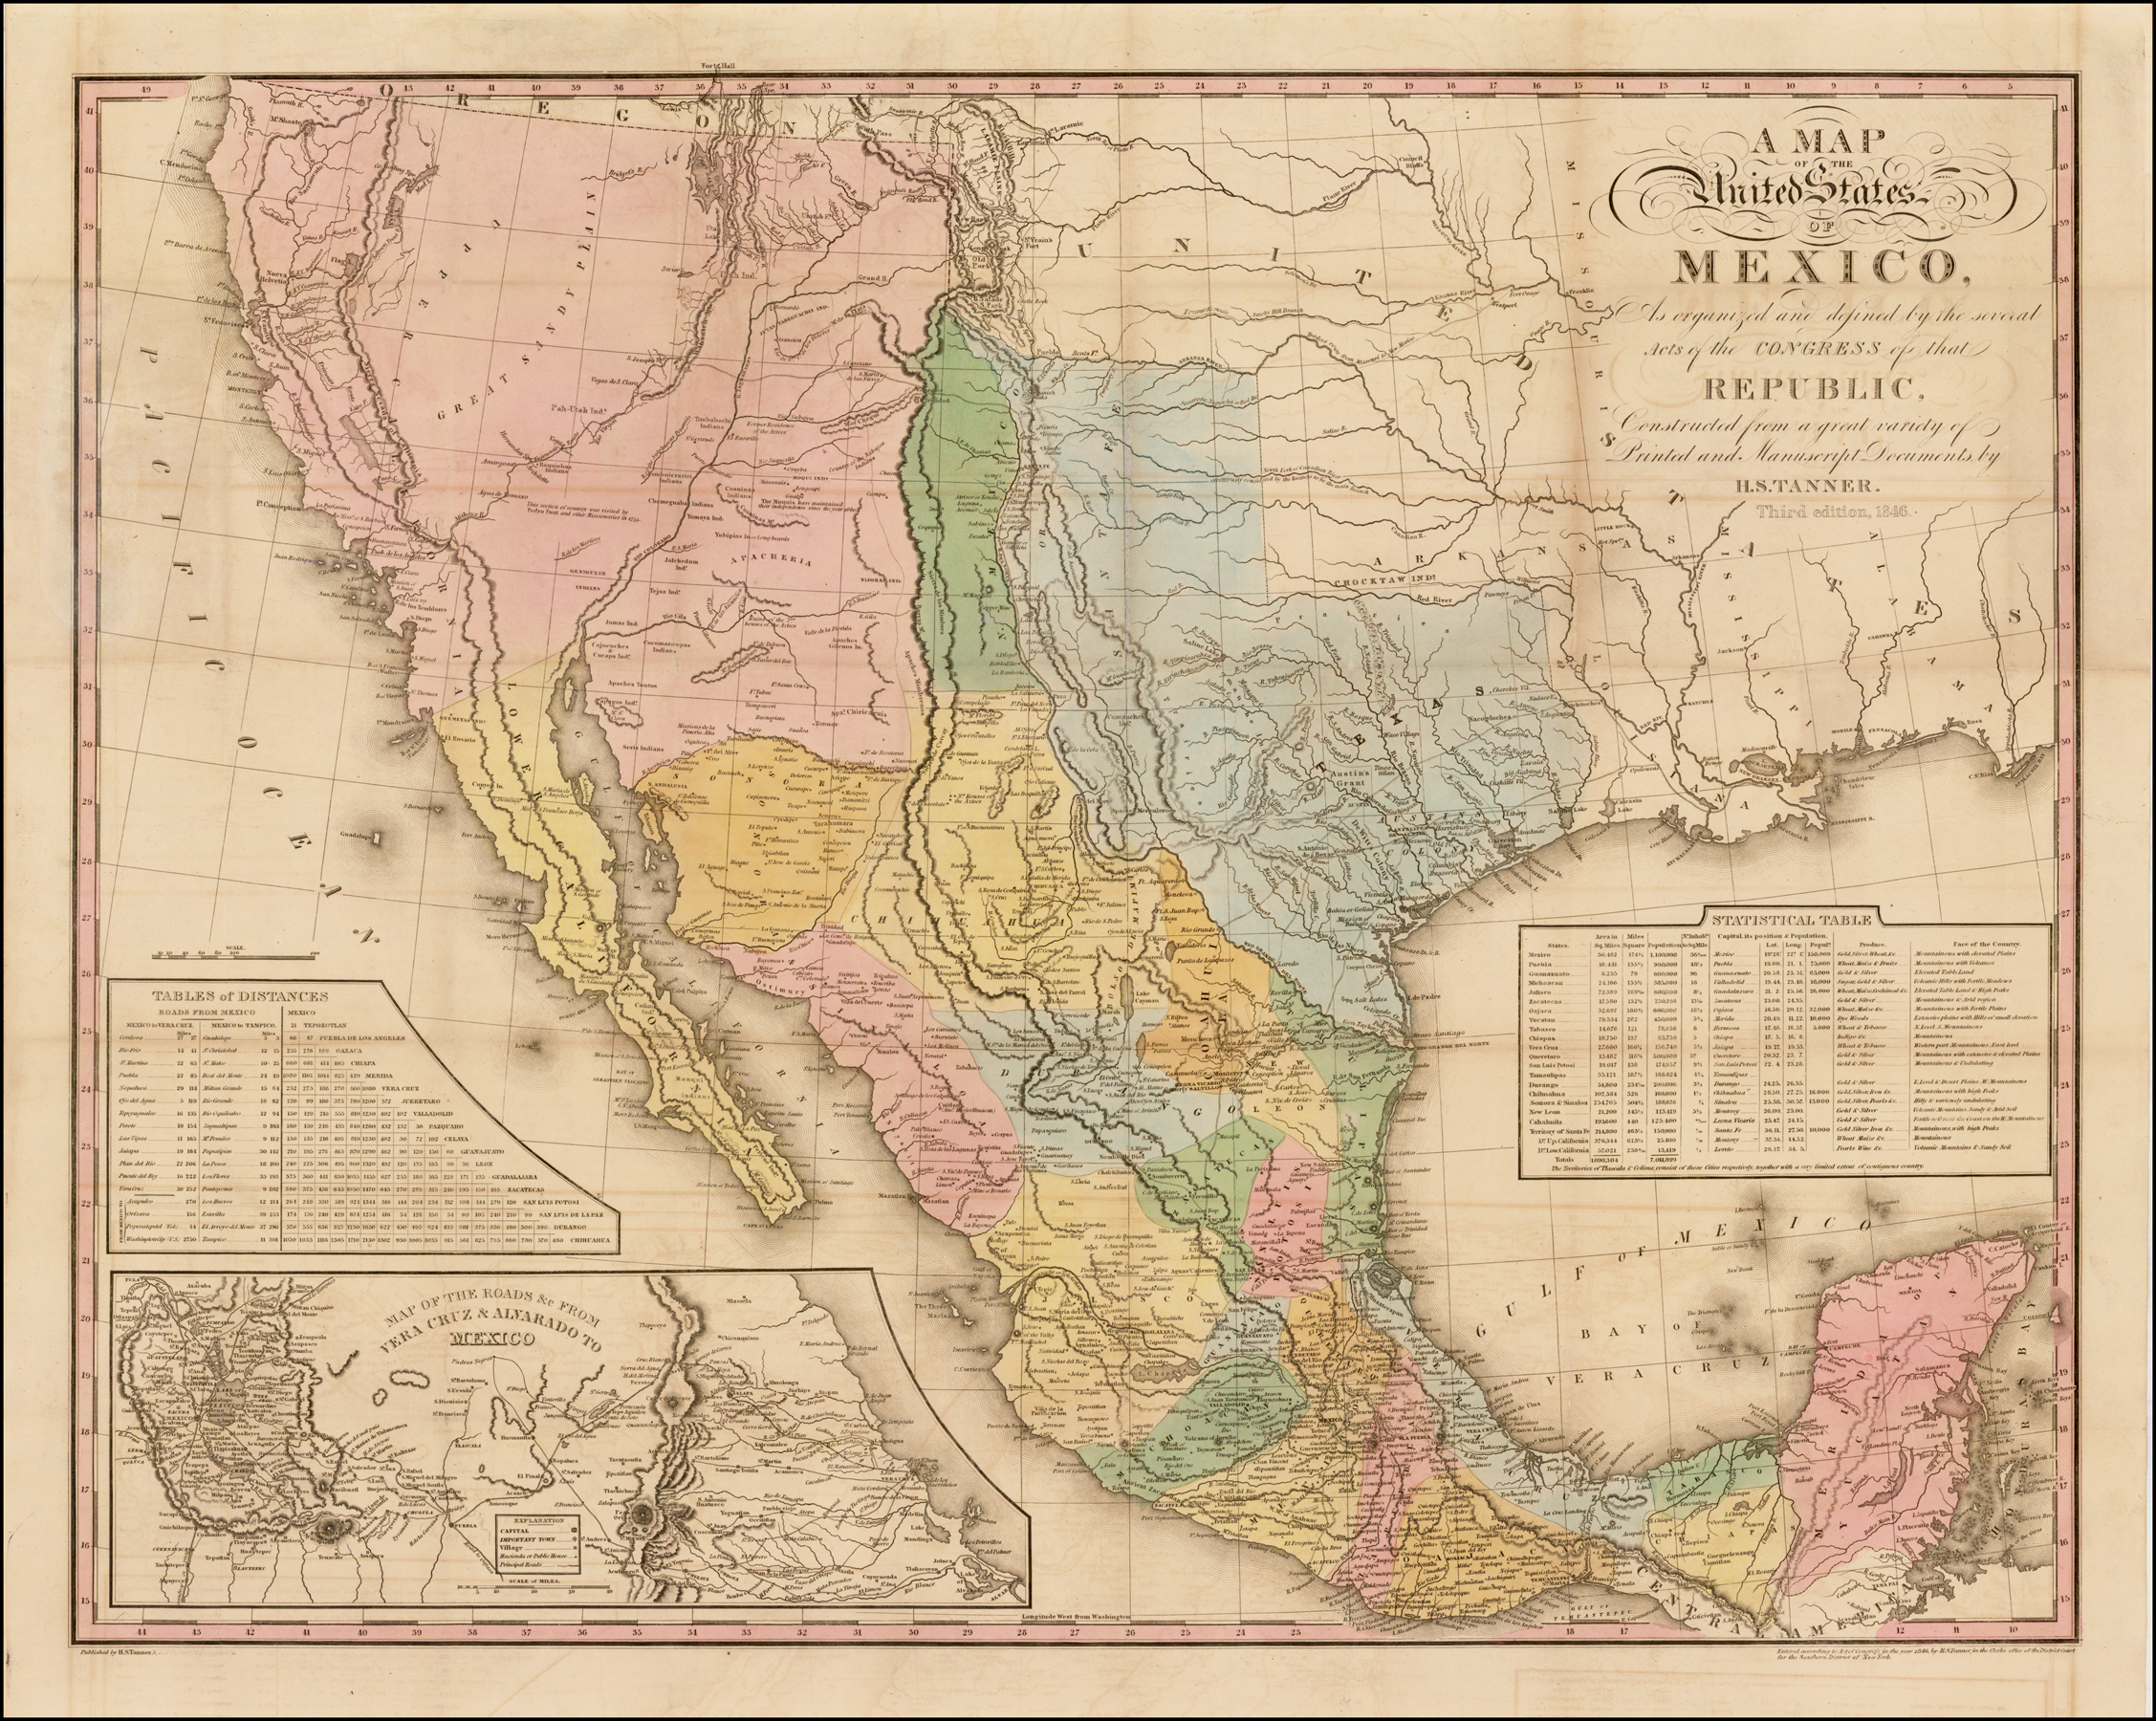 A Map of the United States of Mexico, As organized and ... States Of Mexico Map on united states of america, costa rica, map of canada provinces, map mexico cities, map of europe, google map mexico states, gulf of mexico states, map of america, map of ghana states, map of middle east, map of canada states, map of spain, map of brazil, map of texas, map of puerto vallarta and surrounding area, mexico city, map of oaxaca, map of east coast states, map of u.s. states, map of usa states, map of mexican states, map of spanish speaking countries, map of panama,